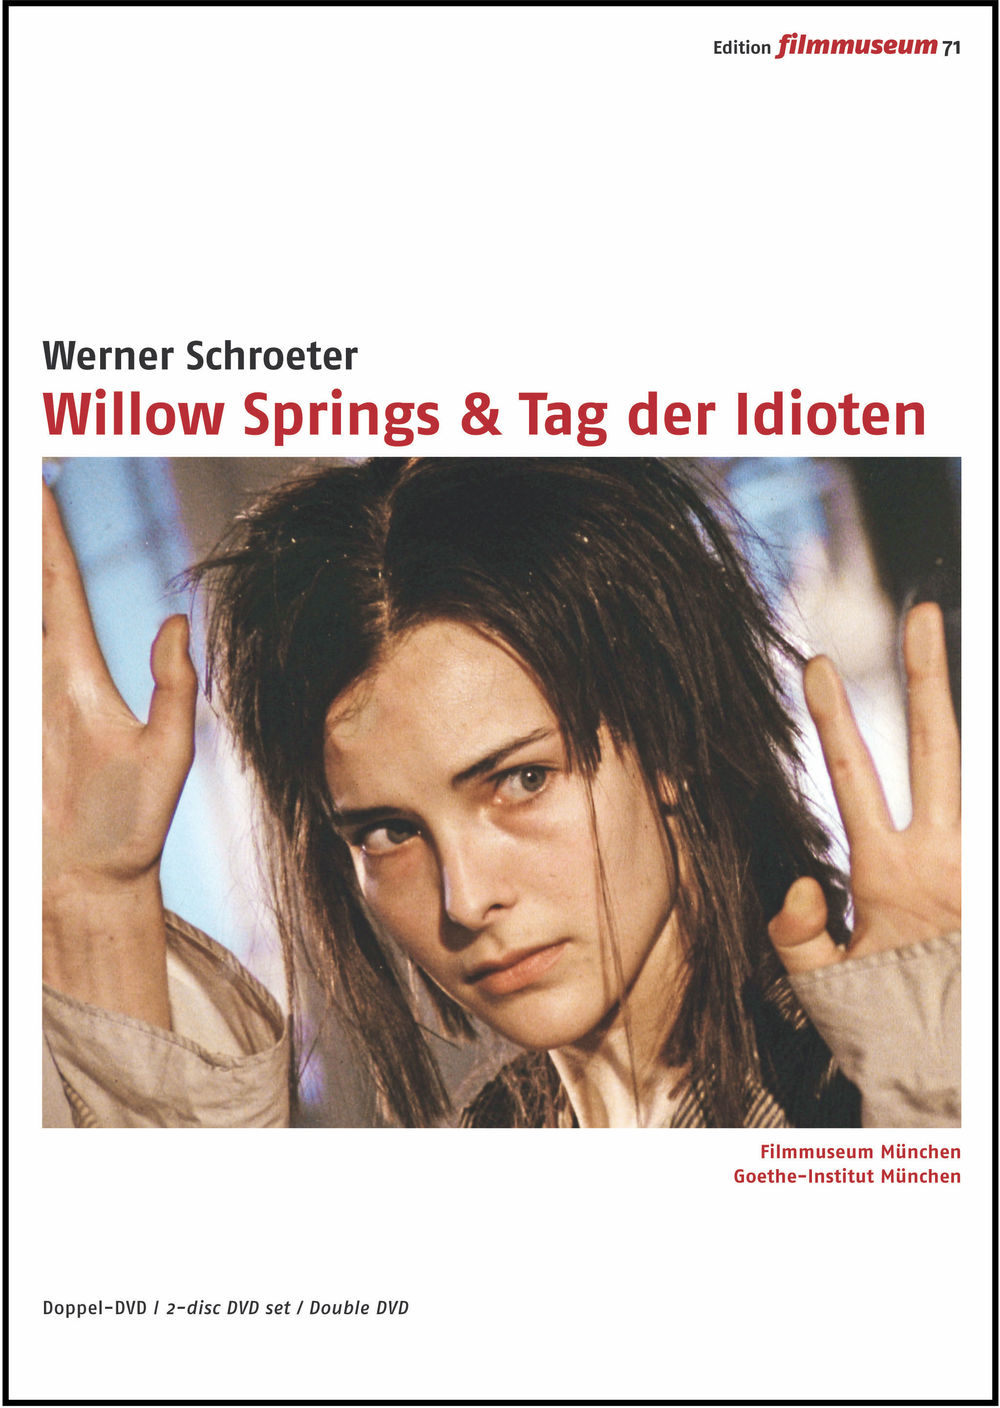 Willow Springs Tag der Idioten cover.jpg